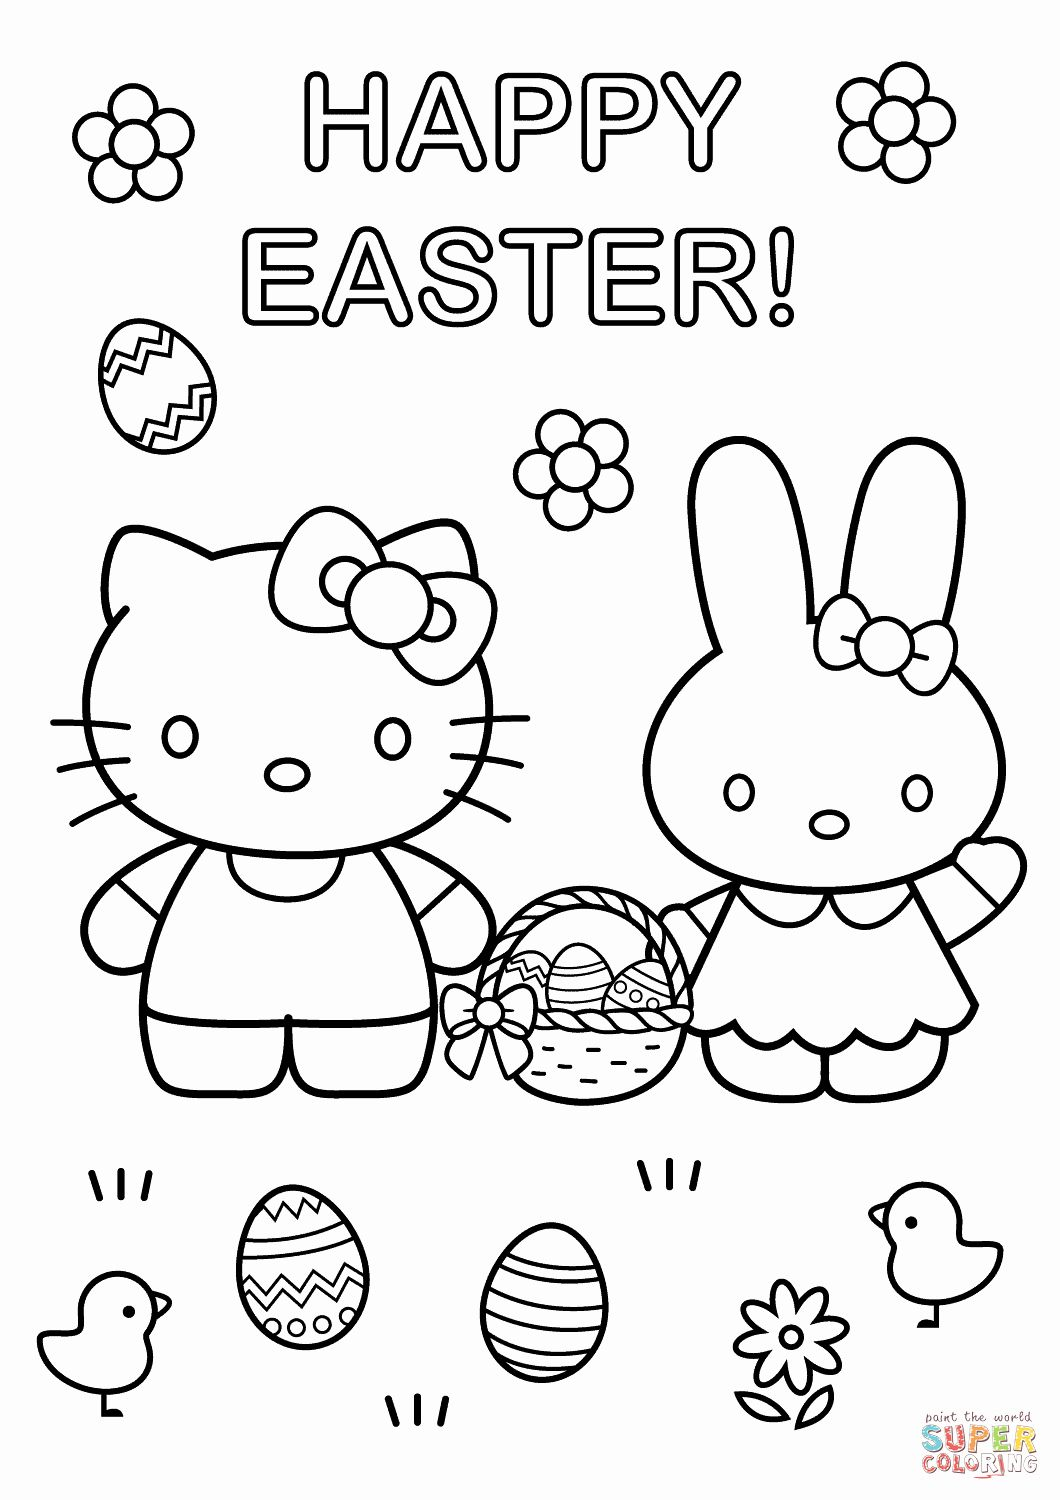 Pin By Winxkitty18 On Print Hello Kitty Coloring Bunny Coloring Pages Hello Kitty Colouring Pages